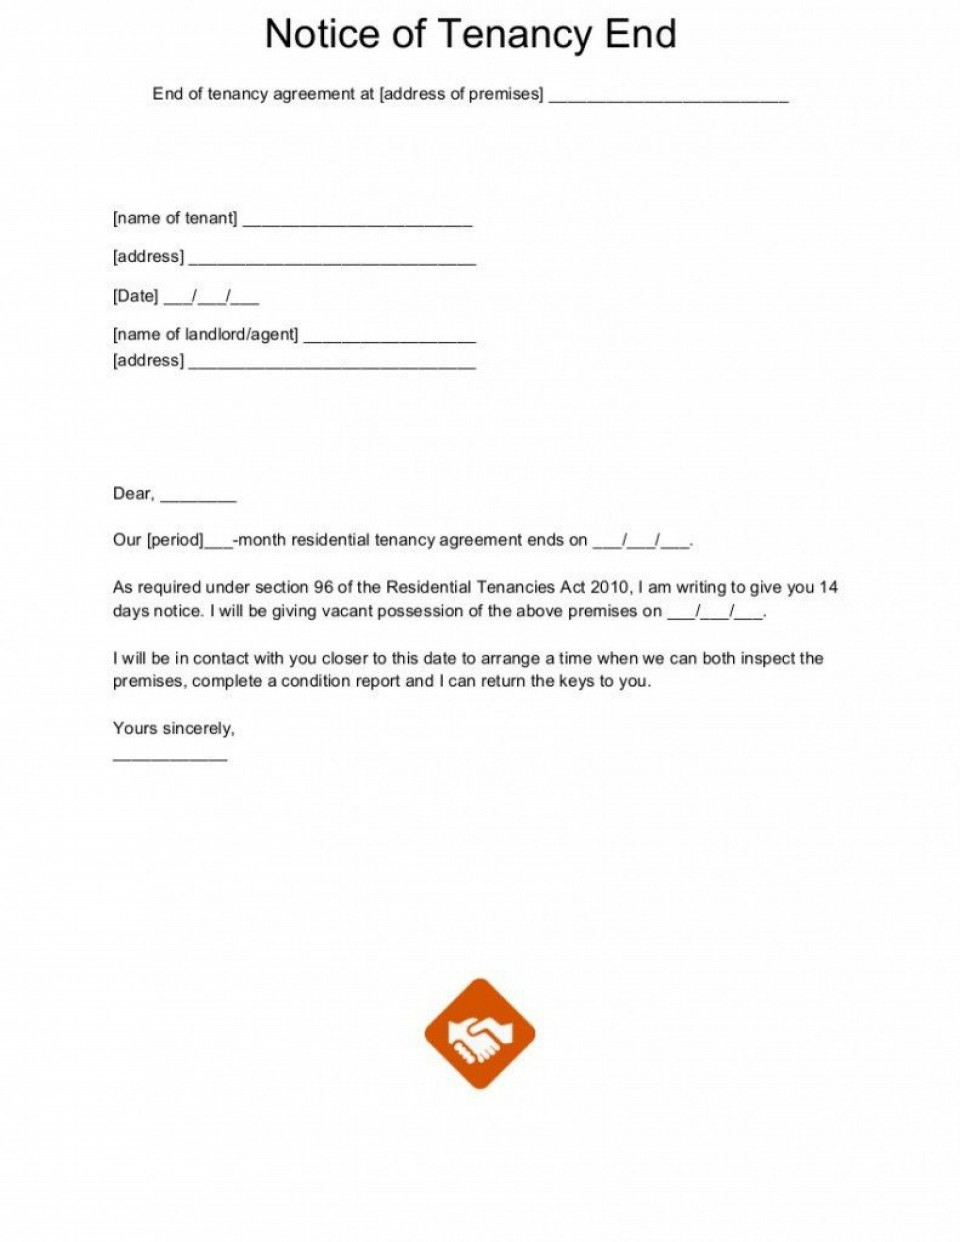 005 Formidable Template Letter To Terminate Rental Agreement Image  End Tenancy For Landlord Ending960